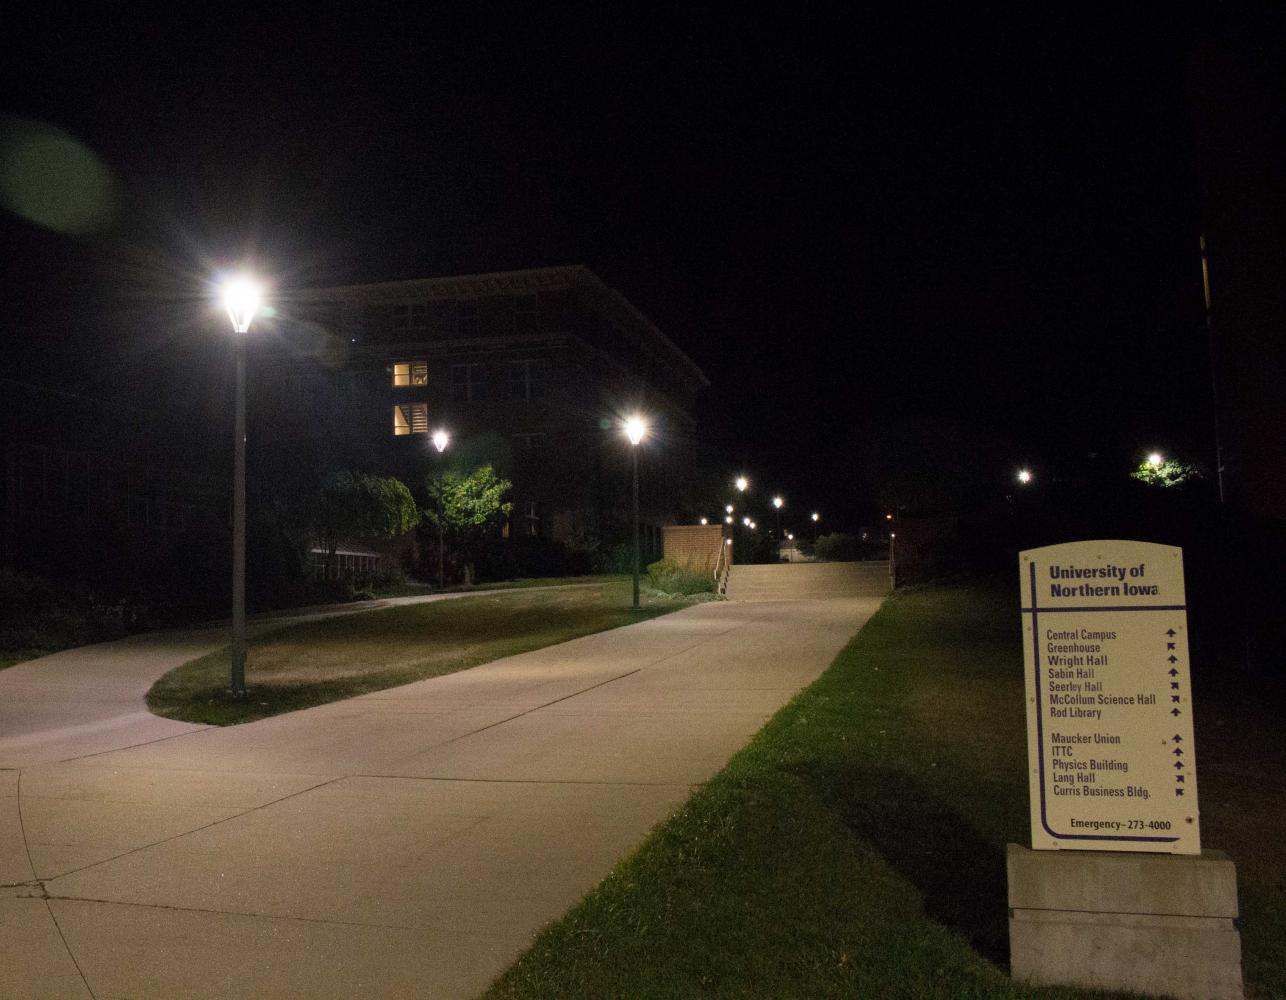 The sidewalk lights across campus were recently replaced with newer models that produce whiter light.